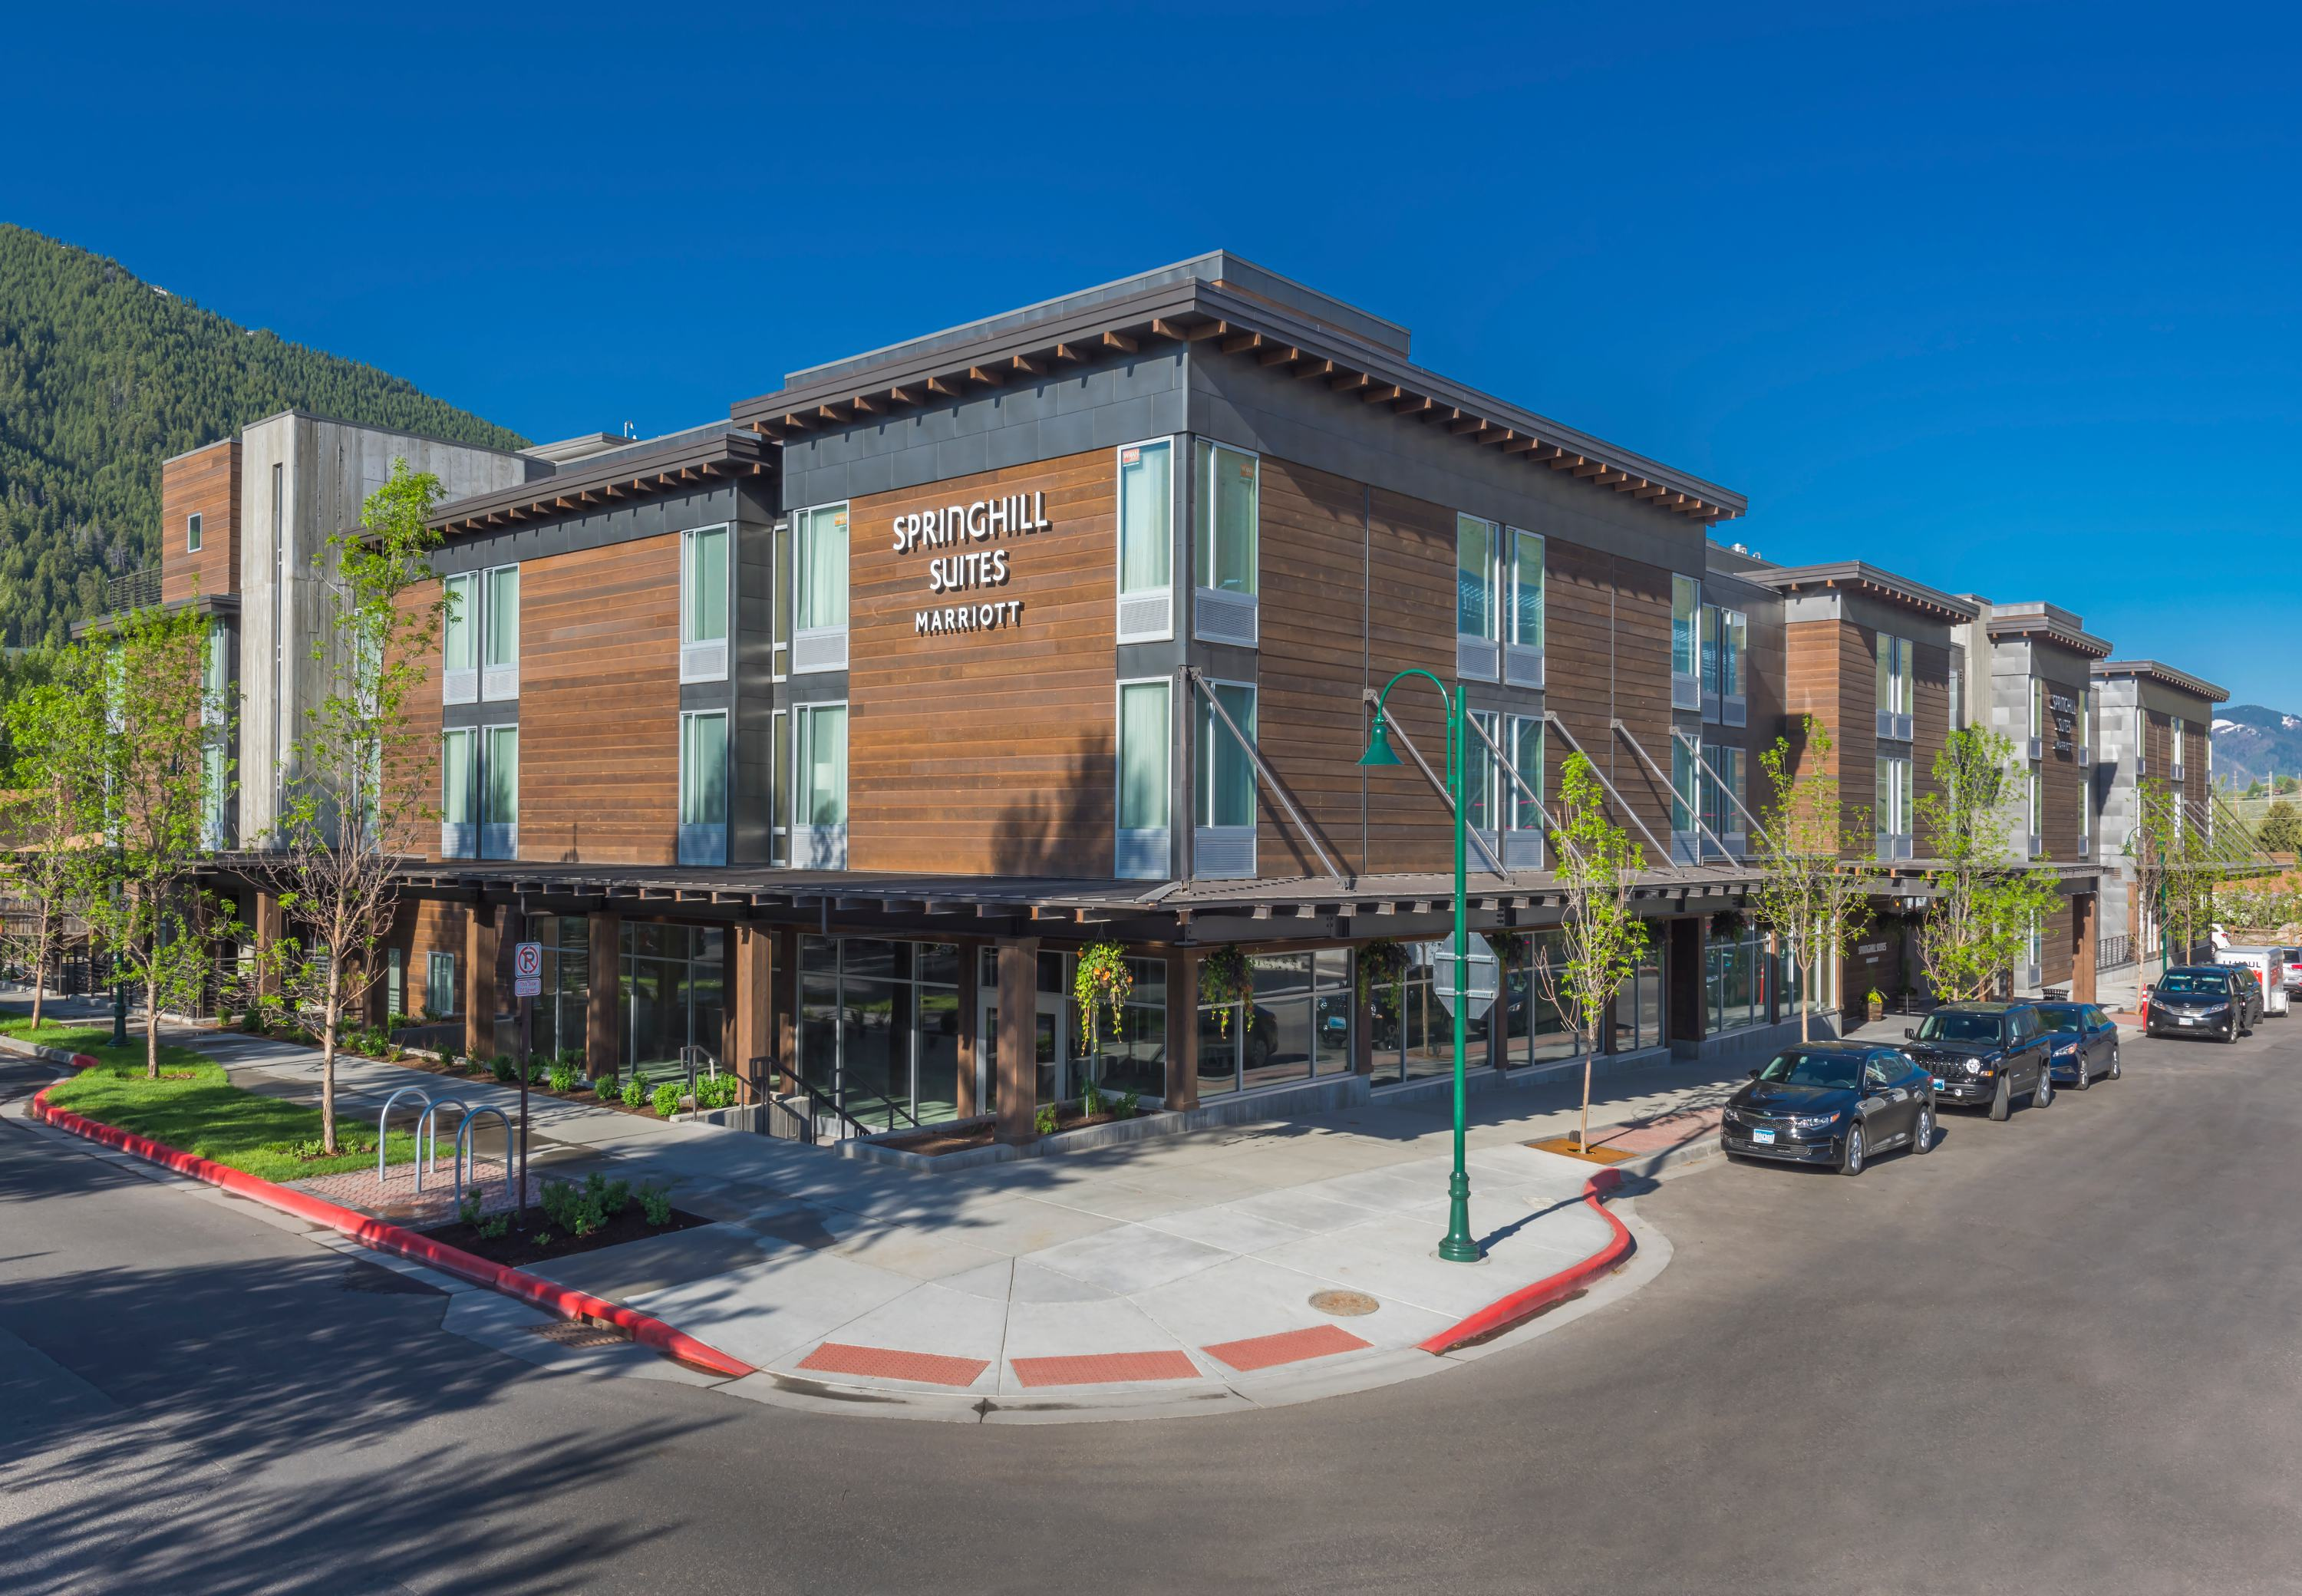 SpringHill Suites by Marriott Jackson Hole image 0